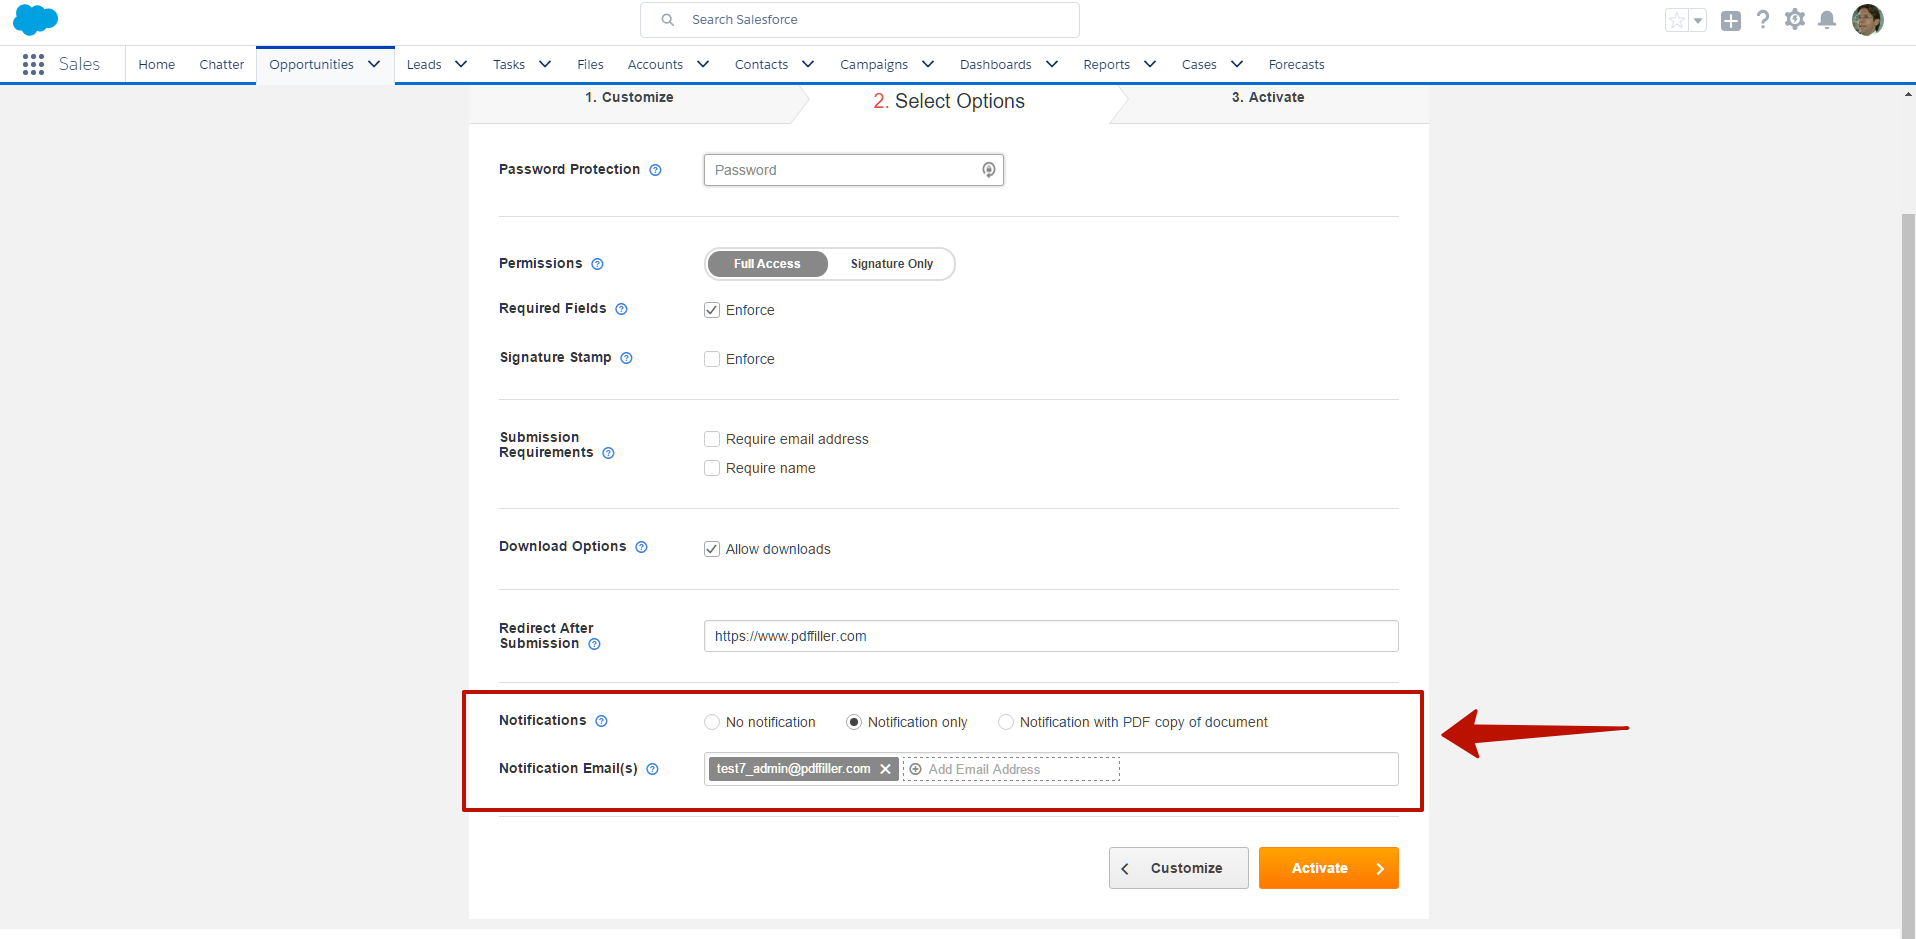 DaDaDocs for integration with Salesforce